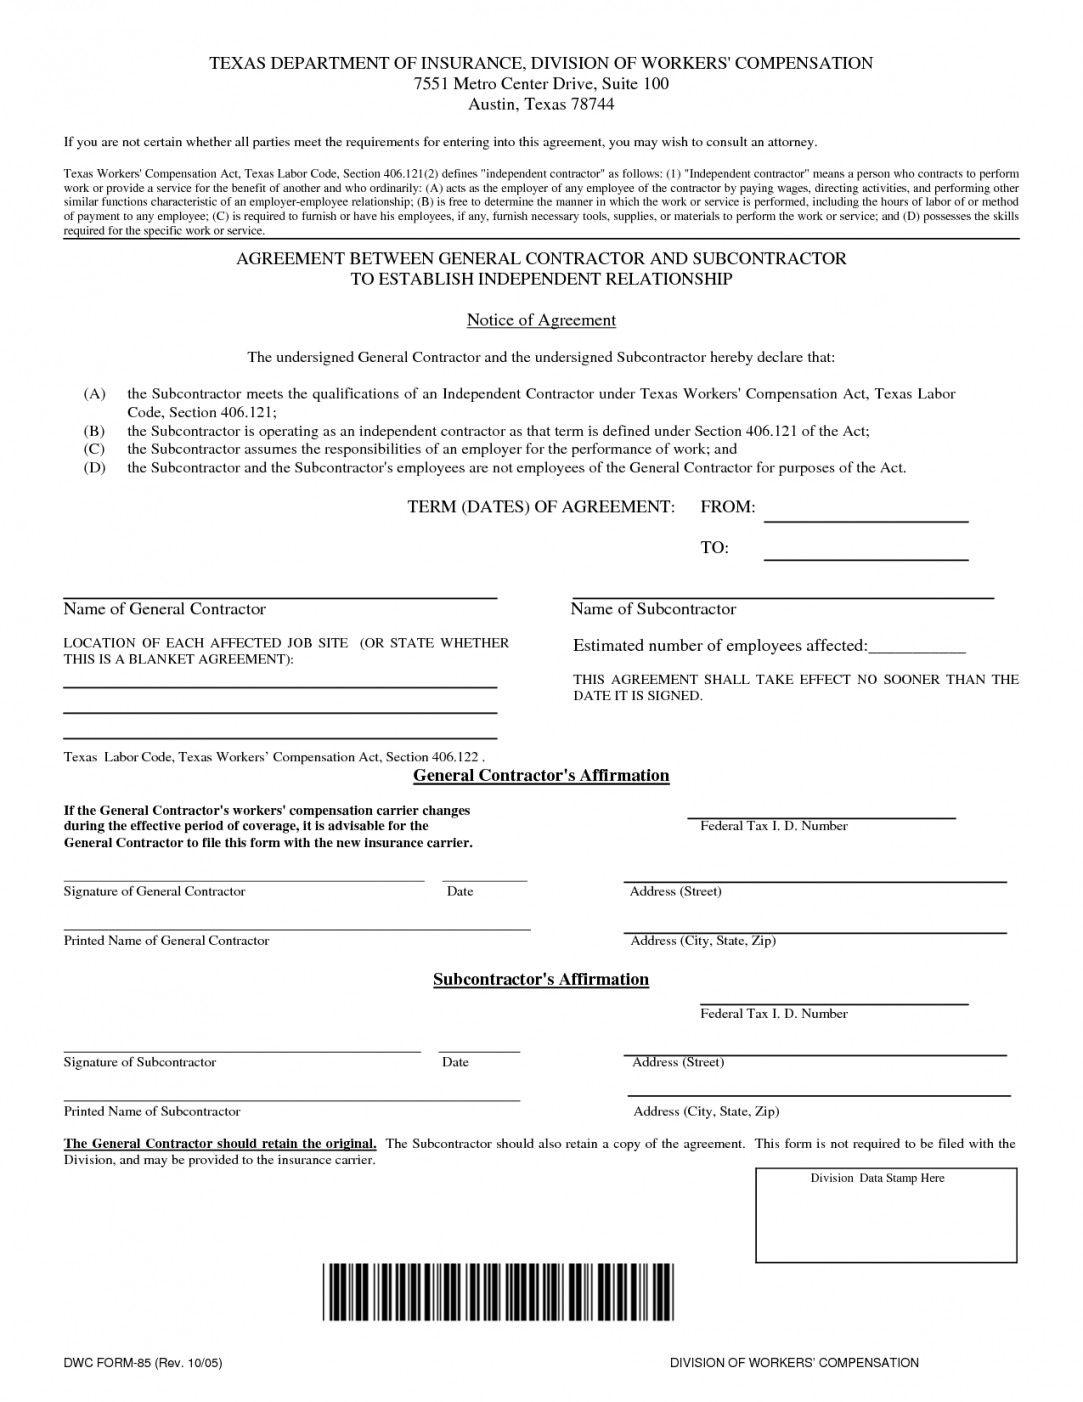 Basic Independent Contractor Template